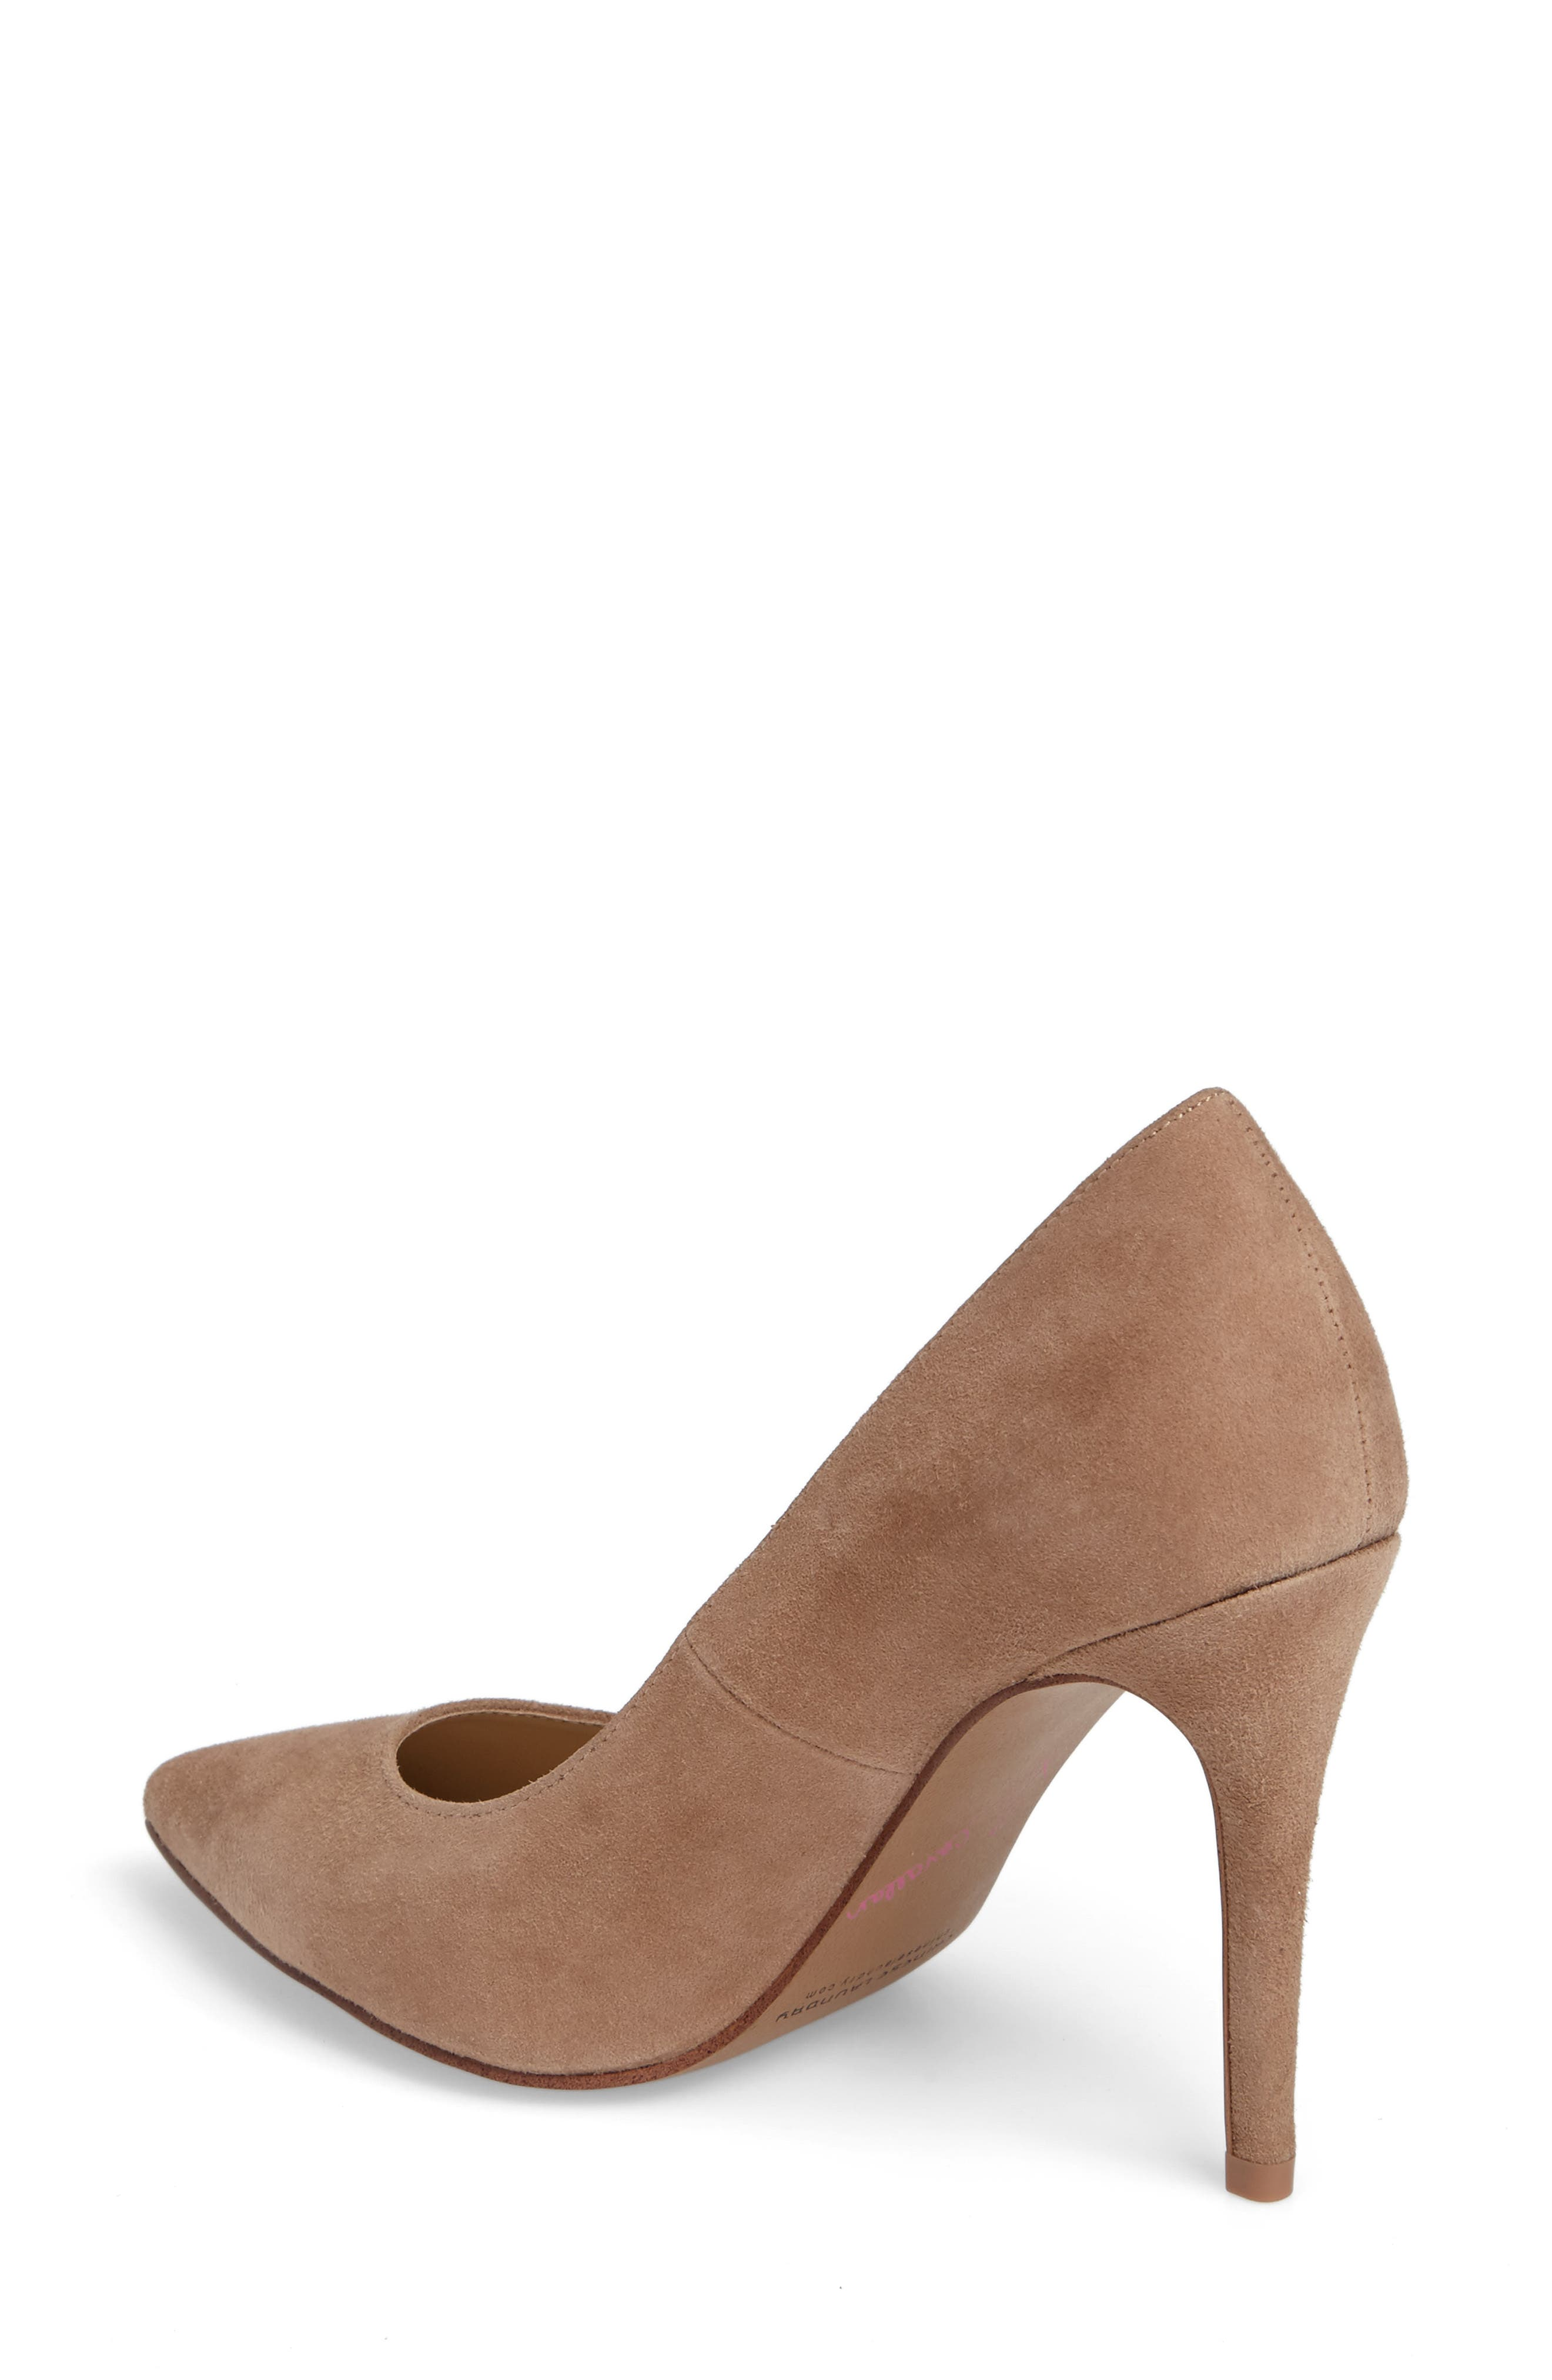 Gisele Pointy Toe Pump,                             Alternate thumbnail 2, color,                             Clay Suede